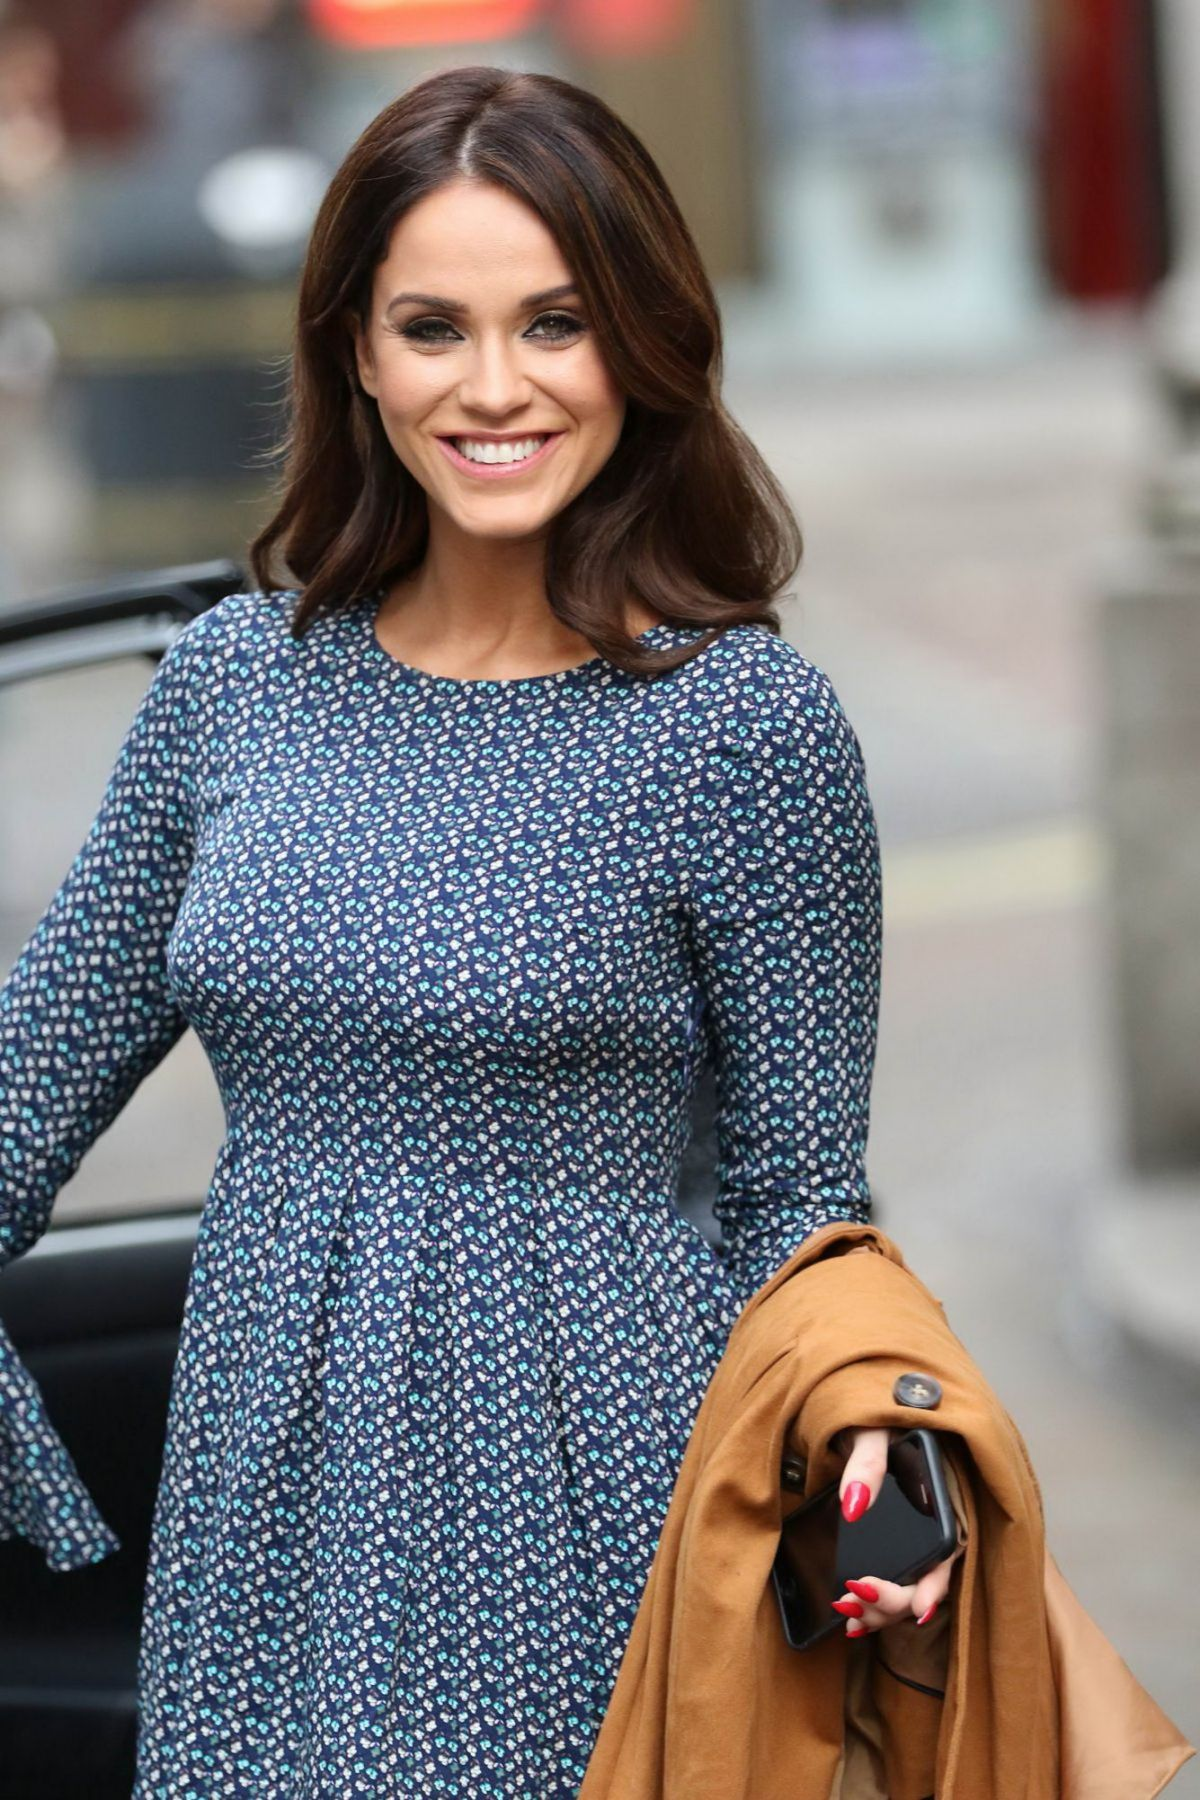 Vicky Pattison Leaving The Weekend Show In London